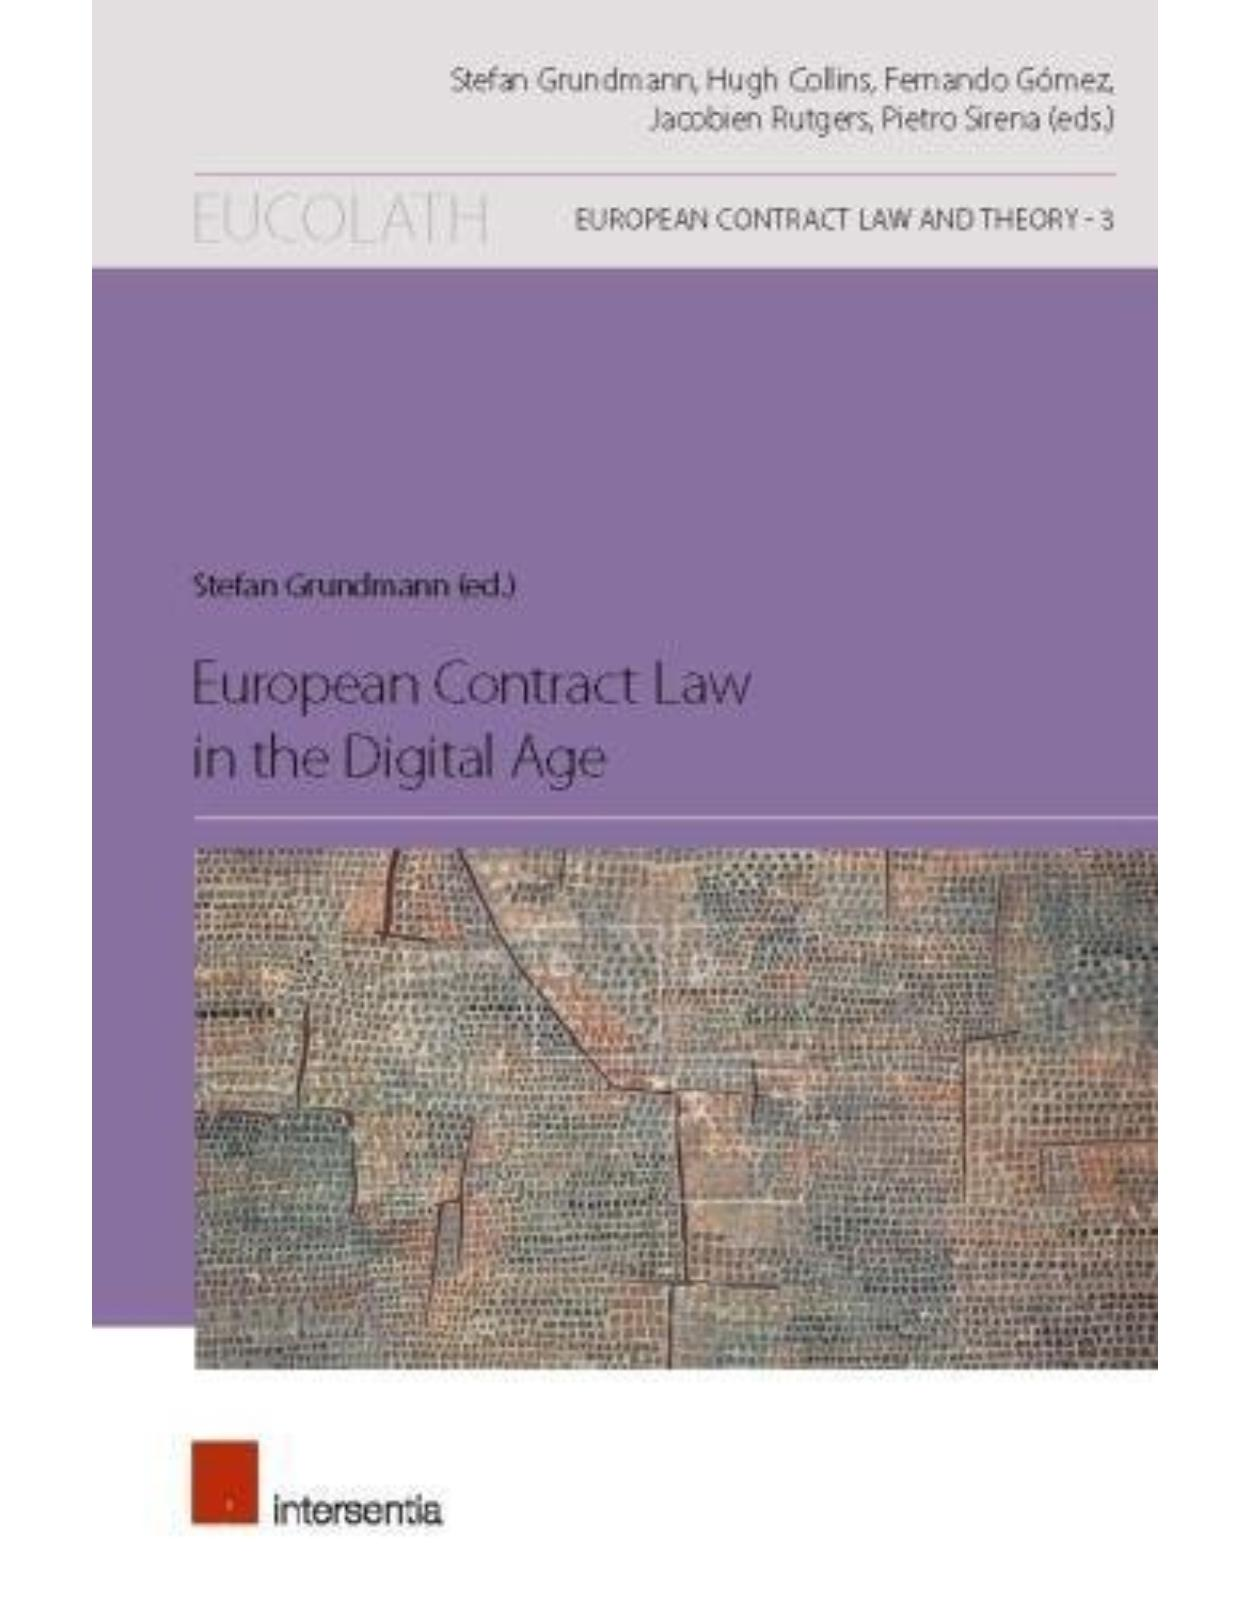 European Contract Law in the Digital Age